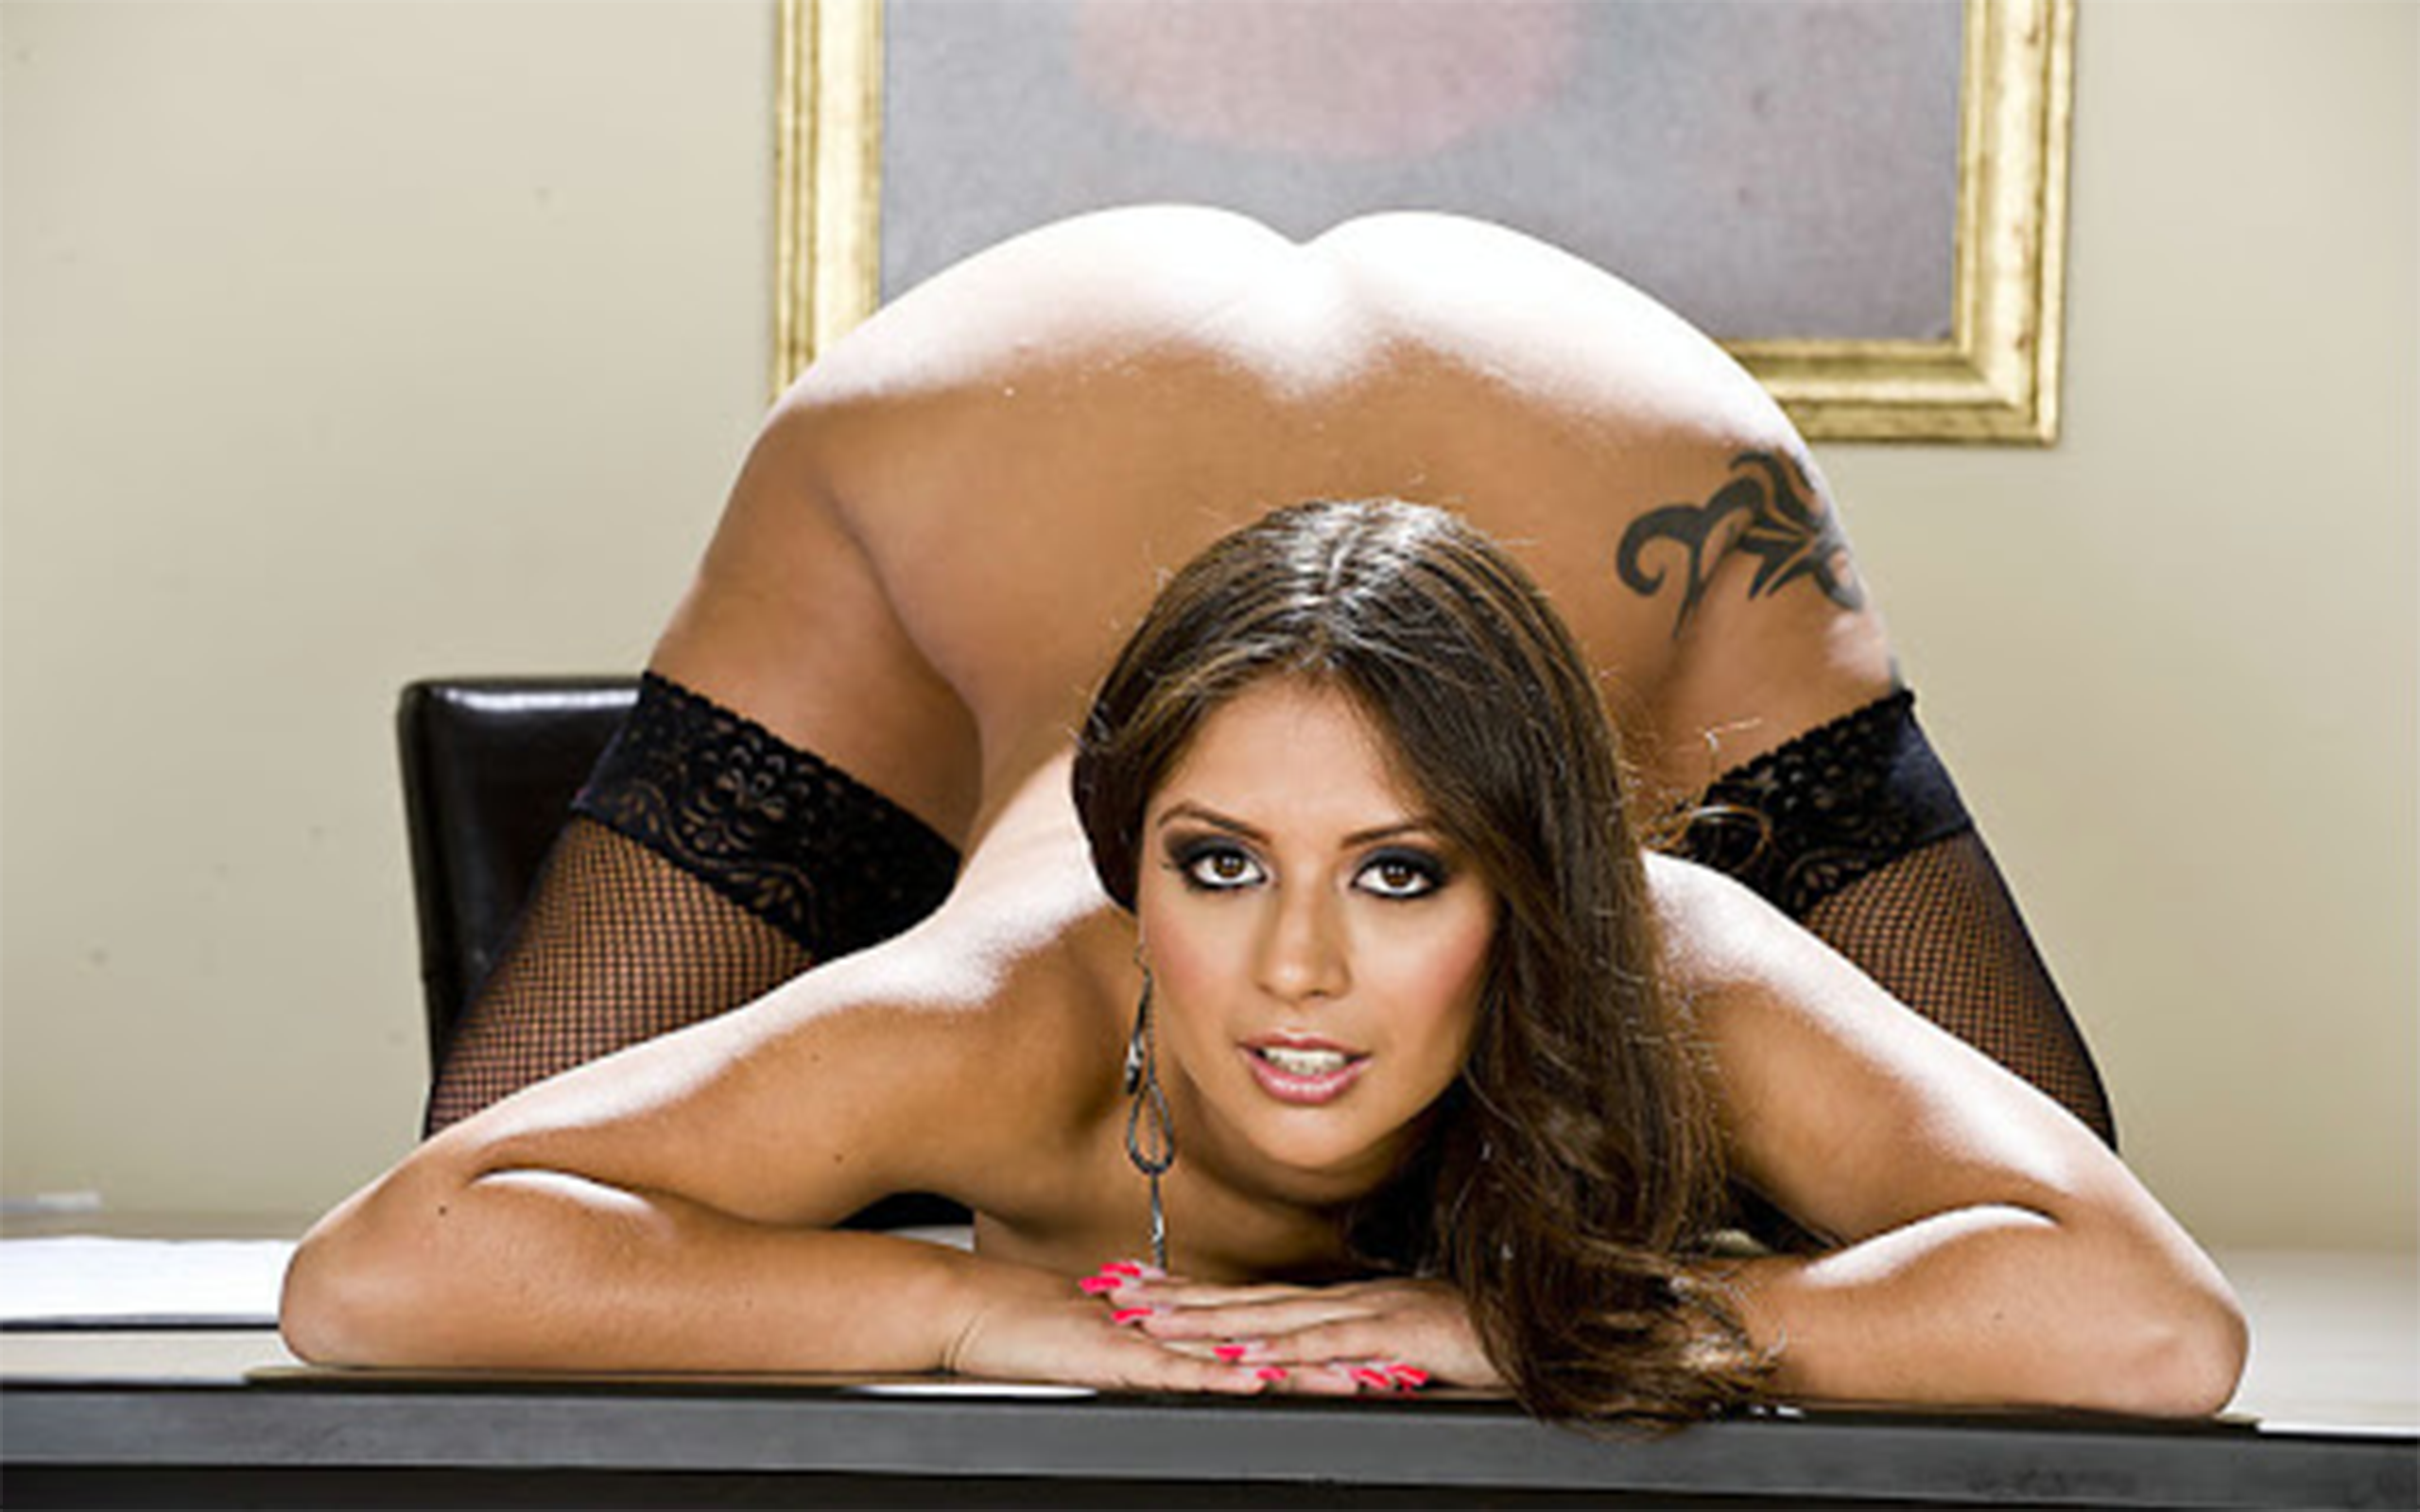 Gorgeous asian kaylani lei wants to spice up her marriage - 1 part 10